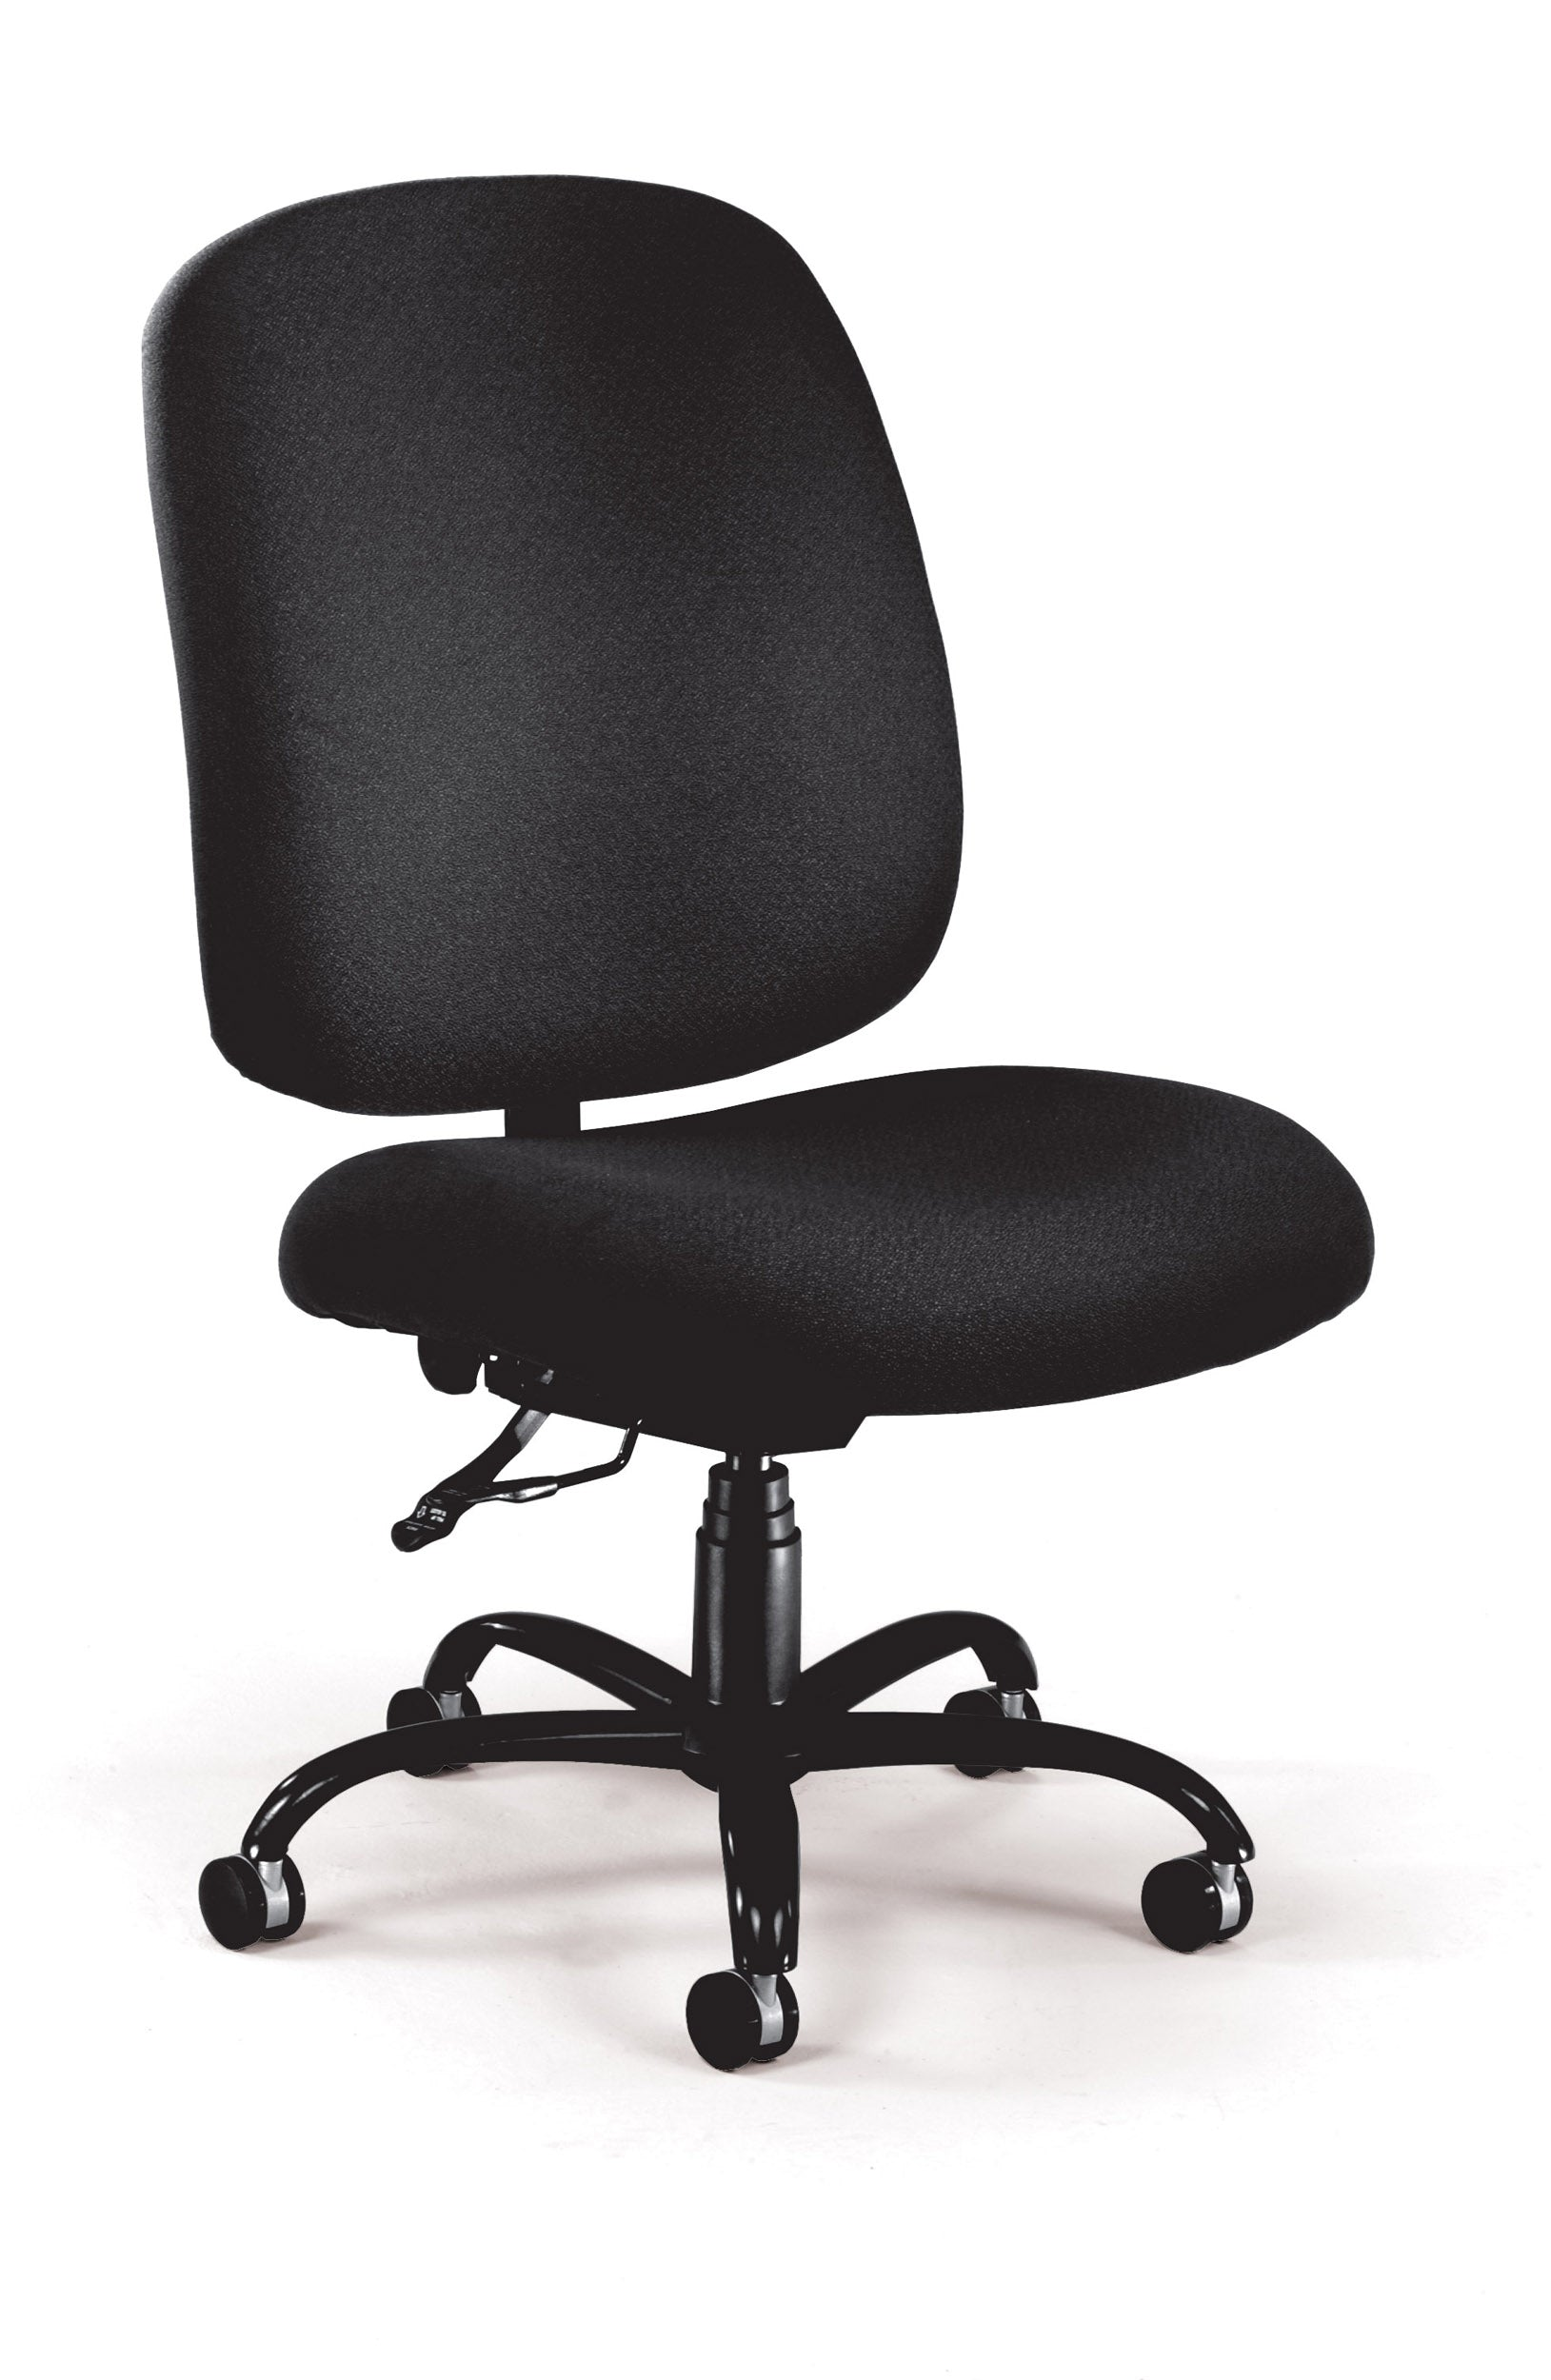 Ofminc Model 700 Big & Tall Upholstered Armless Swivel Task Chair